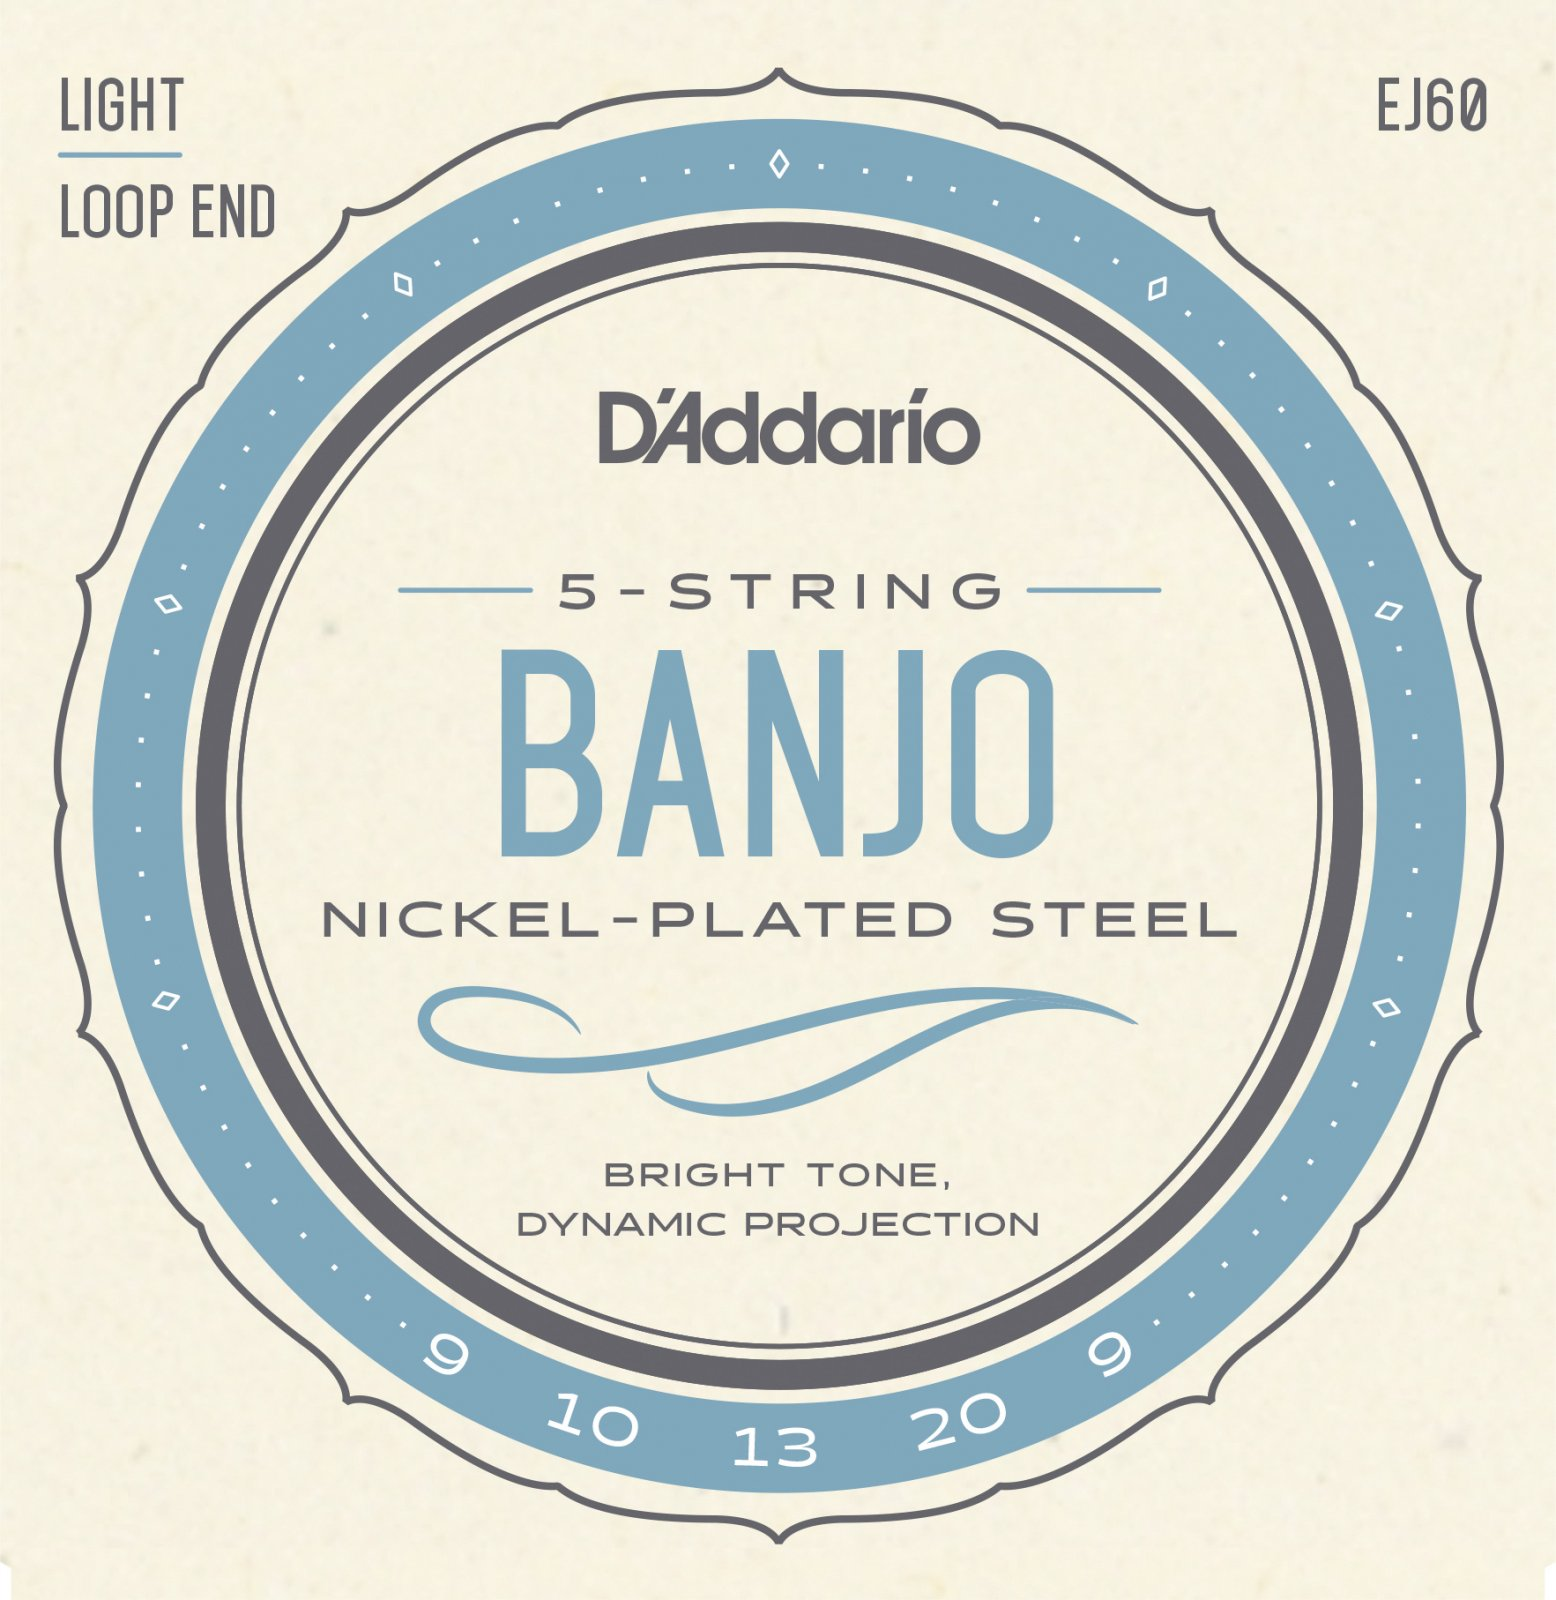 D'Addario EJ60 Nickel 5-String Banjo Strings Light 9-20